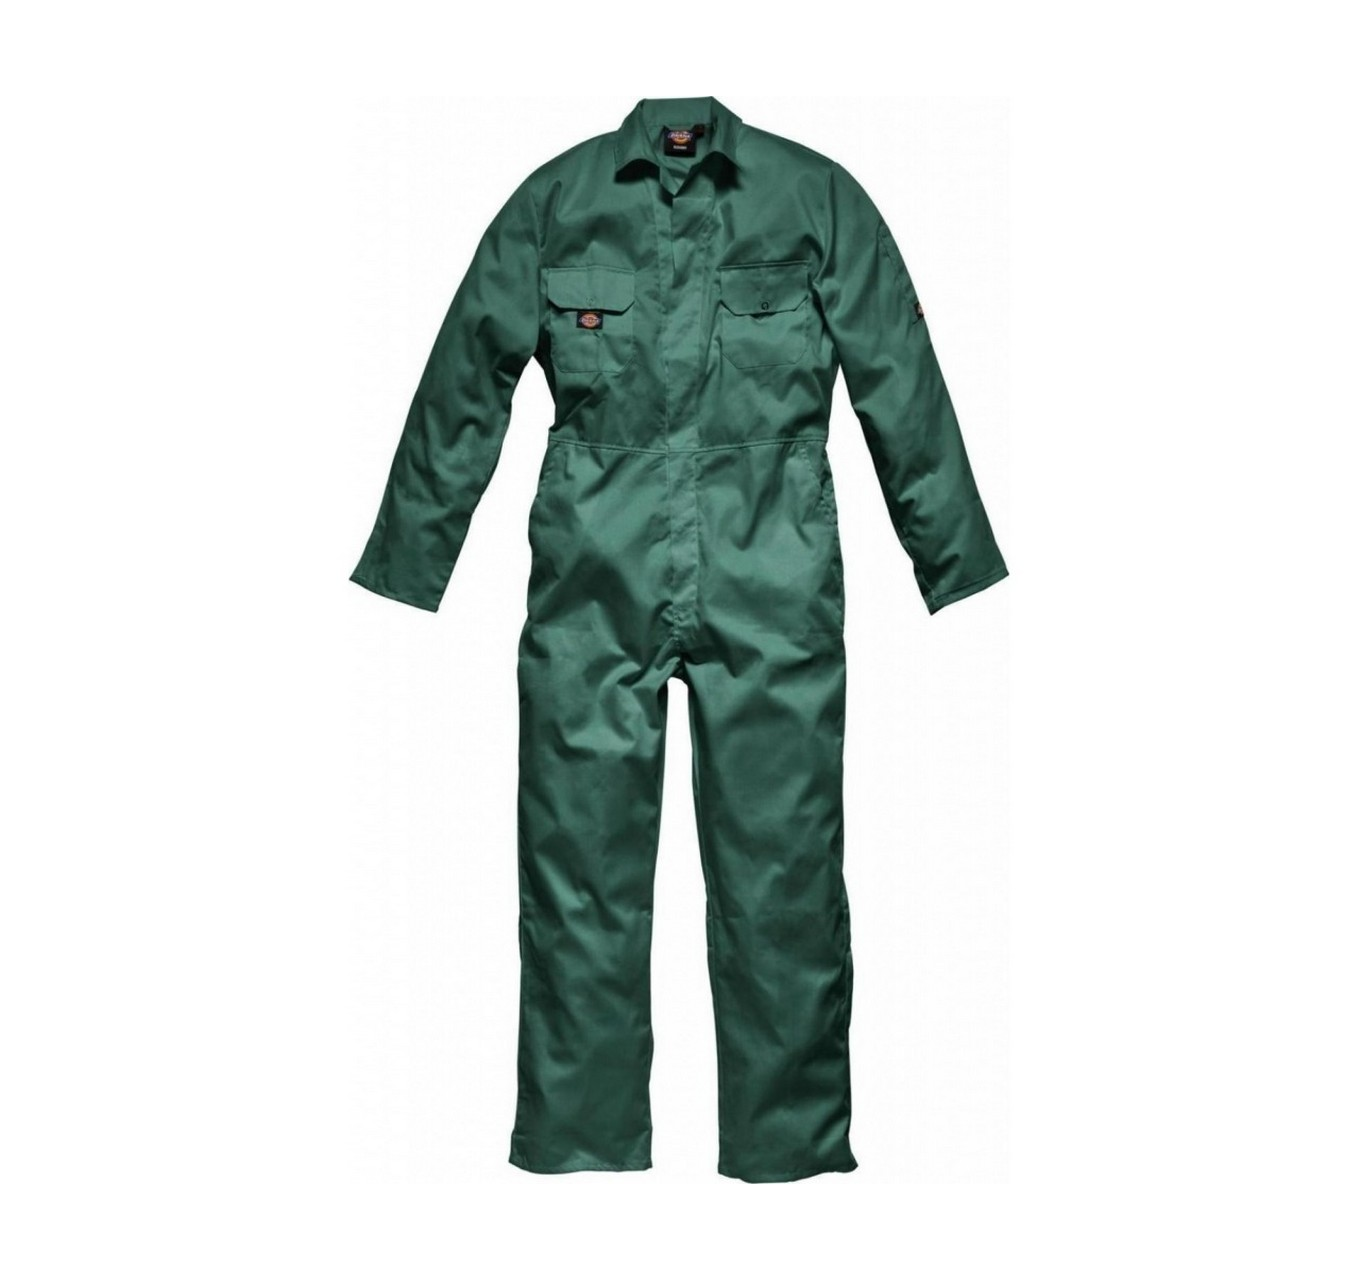 Redhawk Overall Green XL